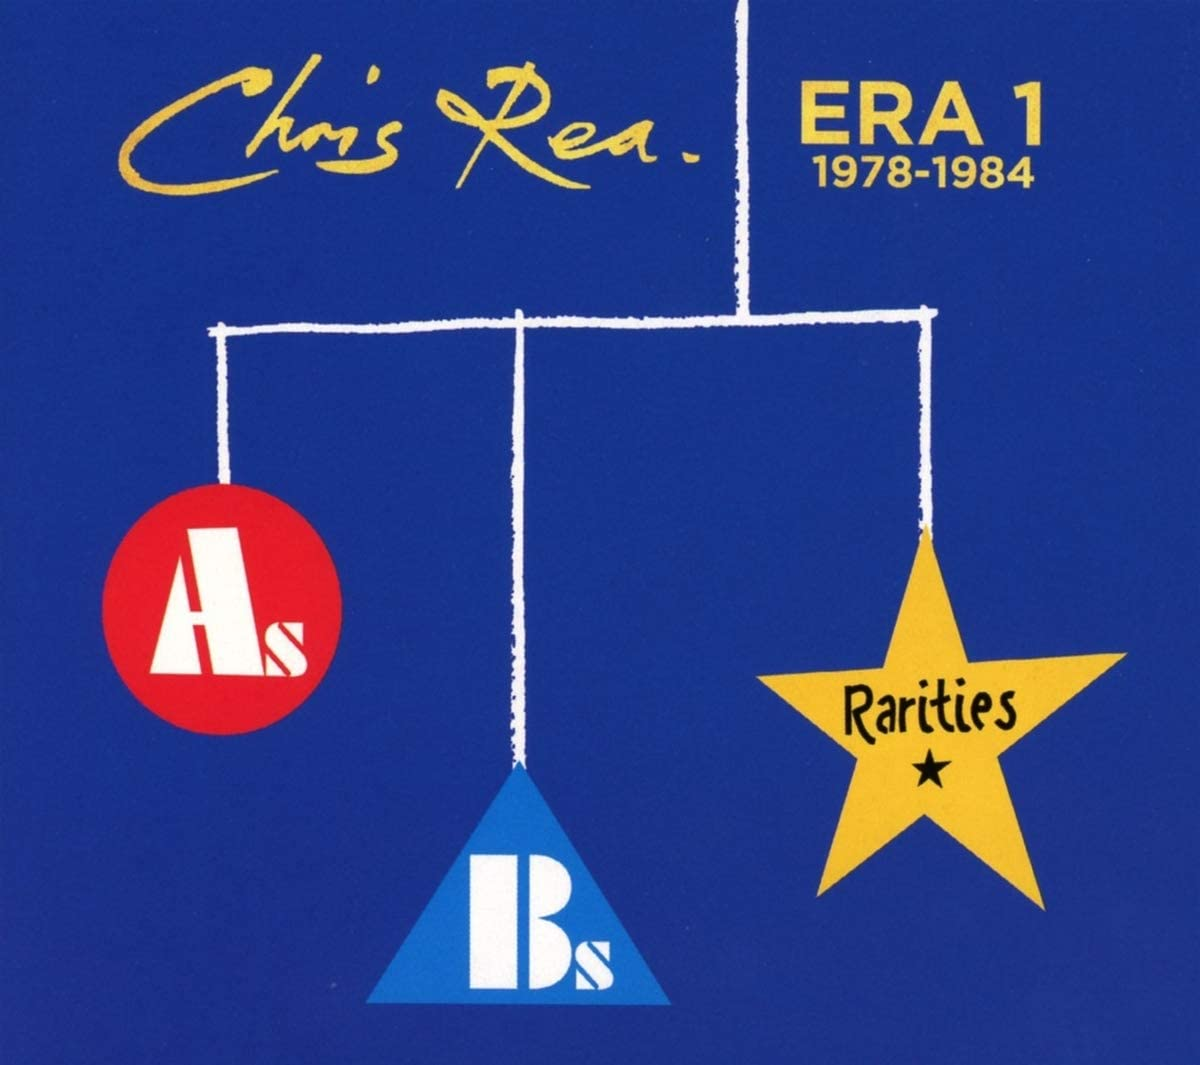 Era 1: As, Bs & Rarities, 1978-1984